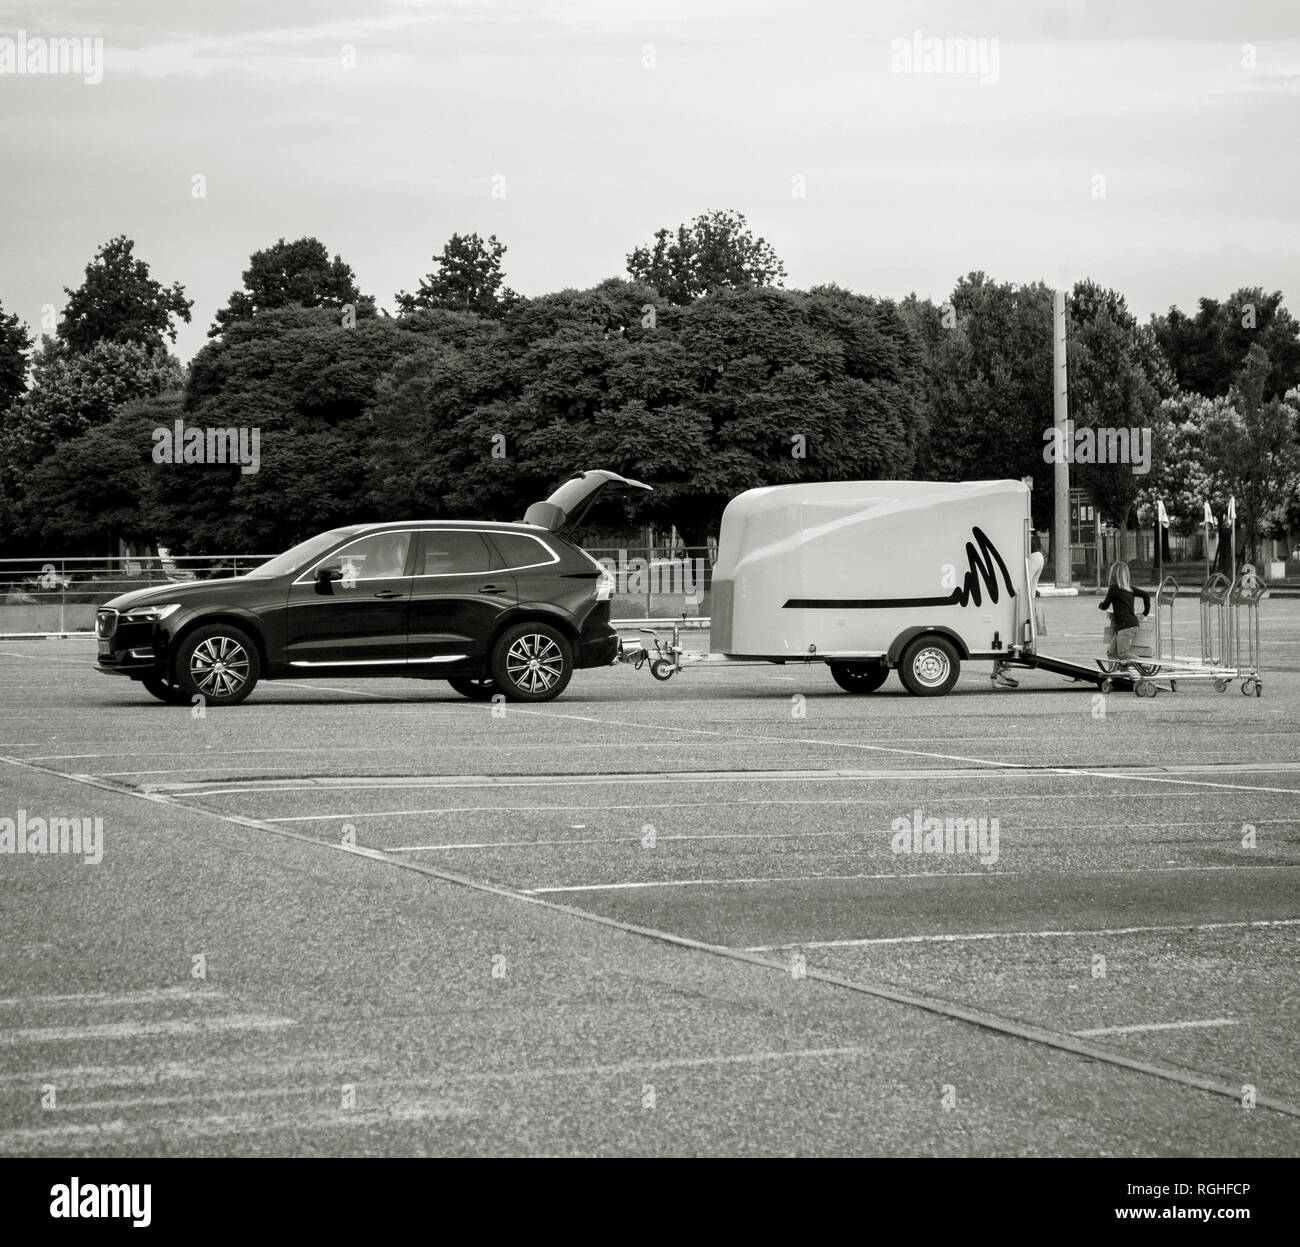 STOCKHOLM, SWEDEN - JUN 7, 2018: Single mother with her daughter loading in the Volvo SUV car trailer good bought from IKEA furniture store in the wide empty parked of the Swedish furniture retailer - black and white image - Stock Image